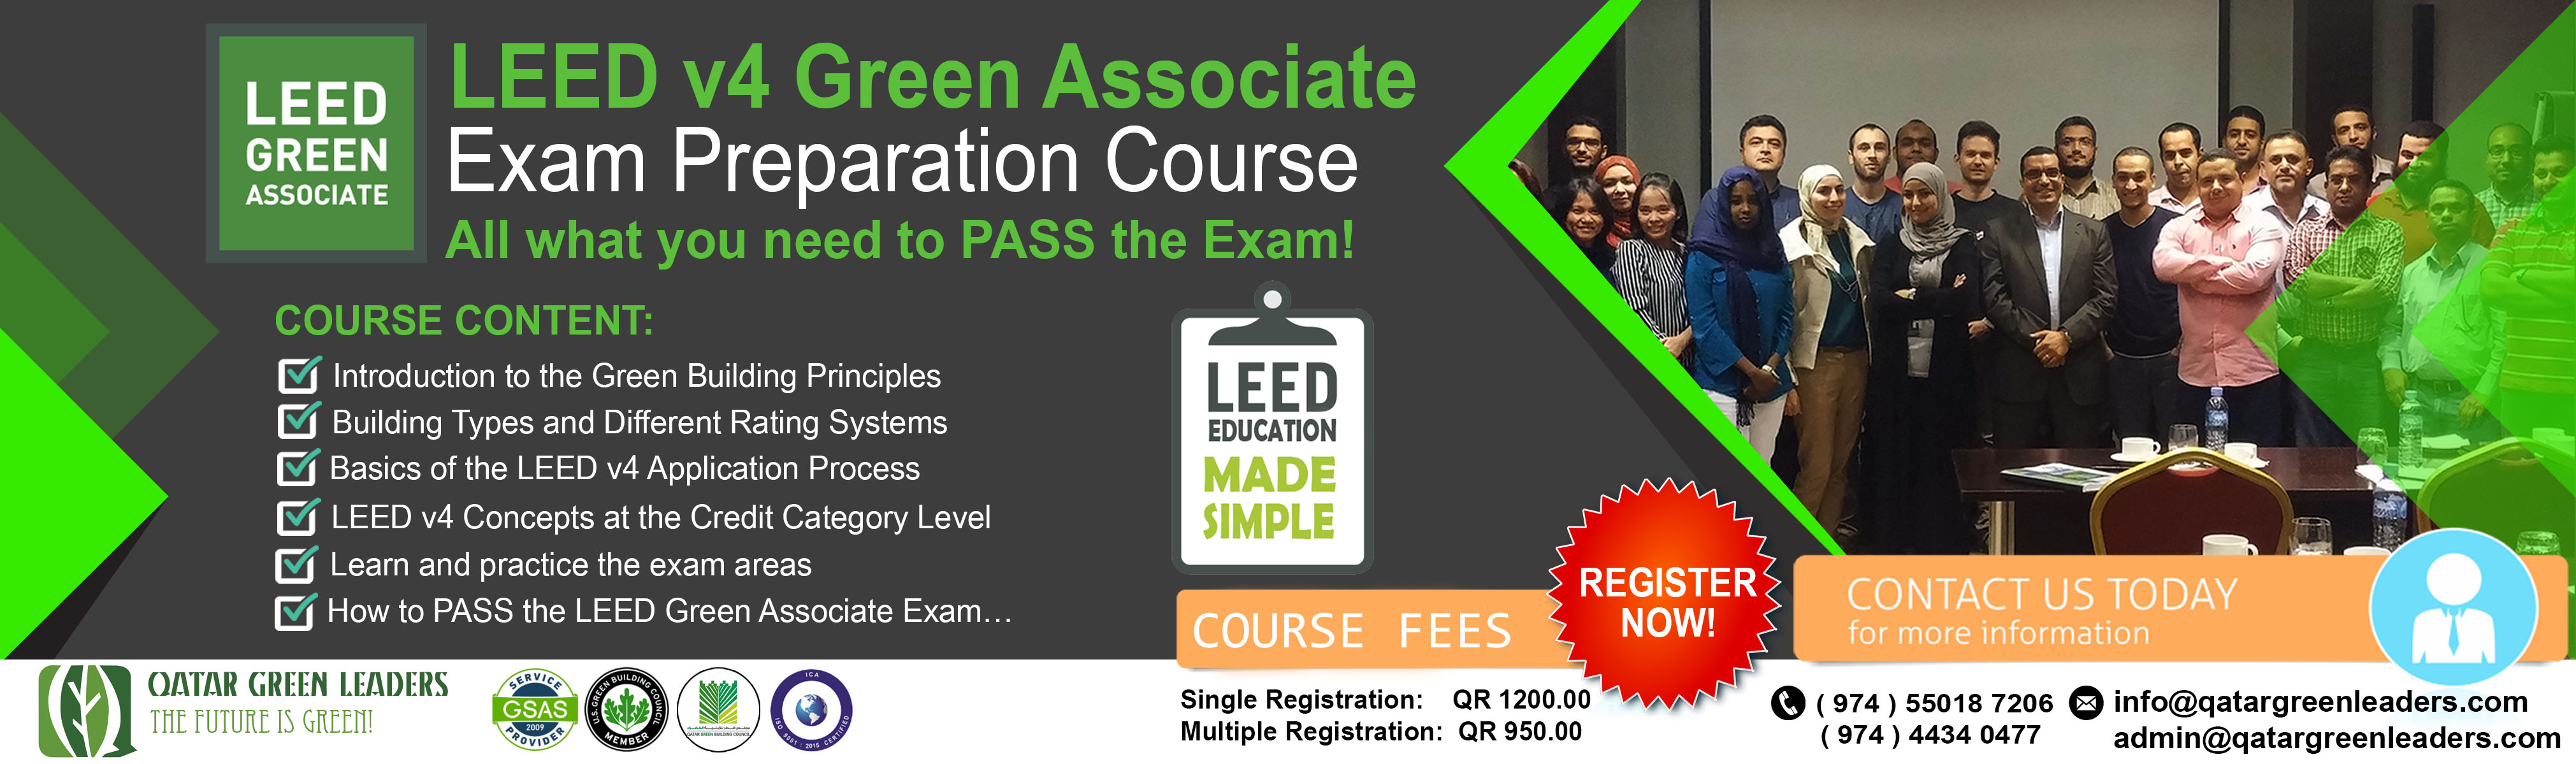 Leed Courses Qatar Green Leaders